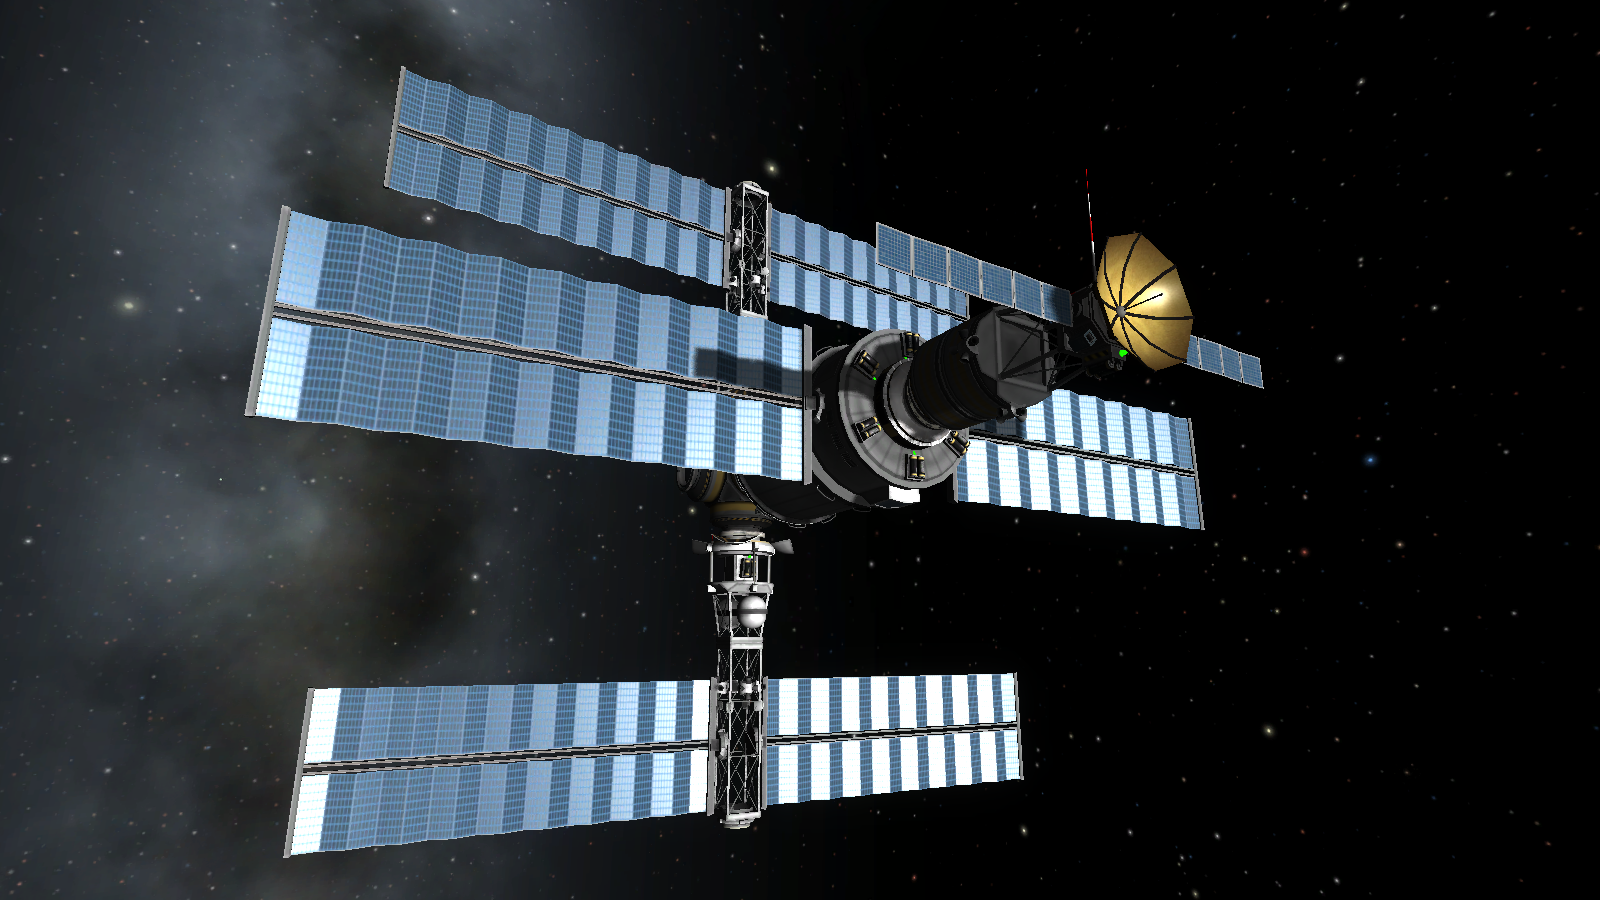 kerbal space program docking - photo #30